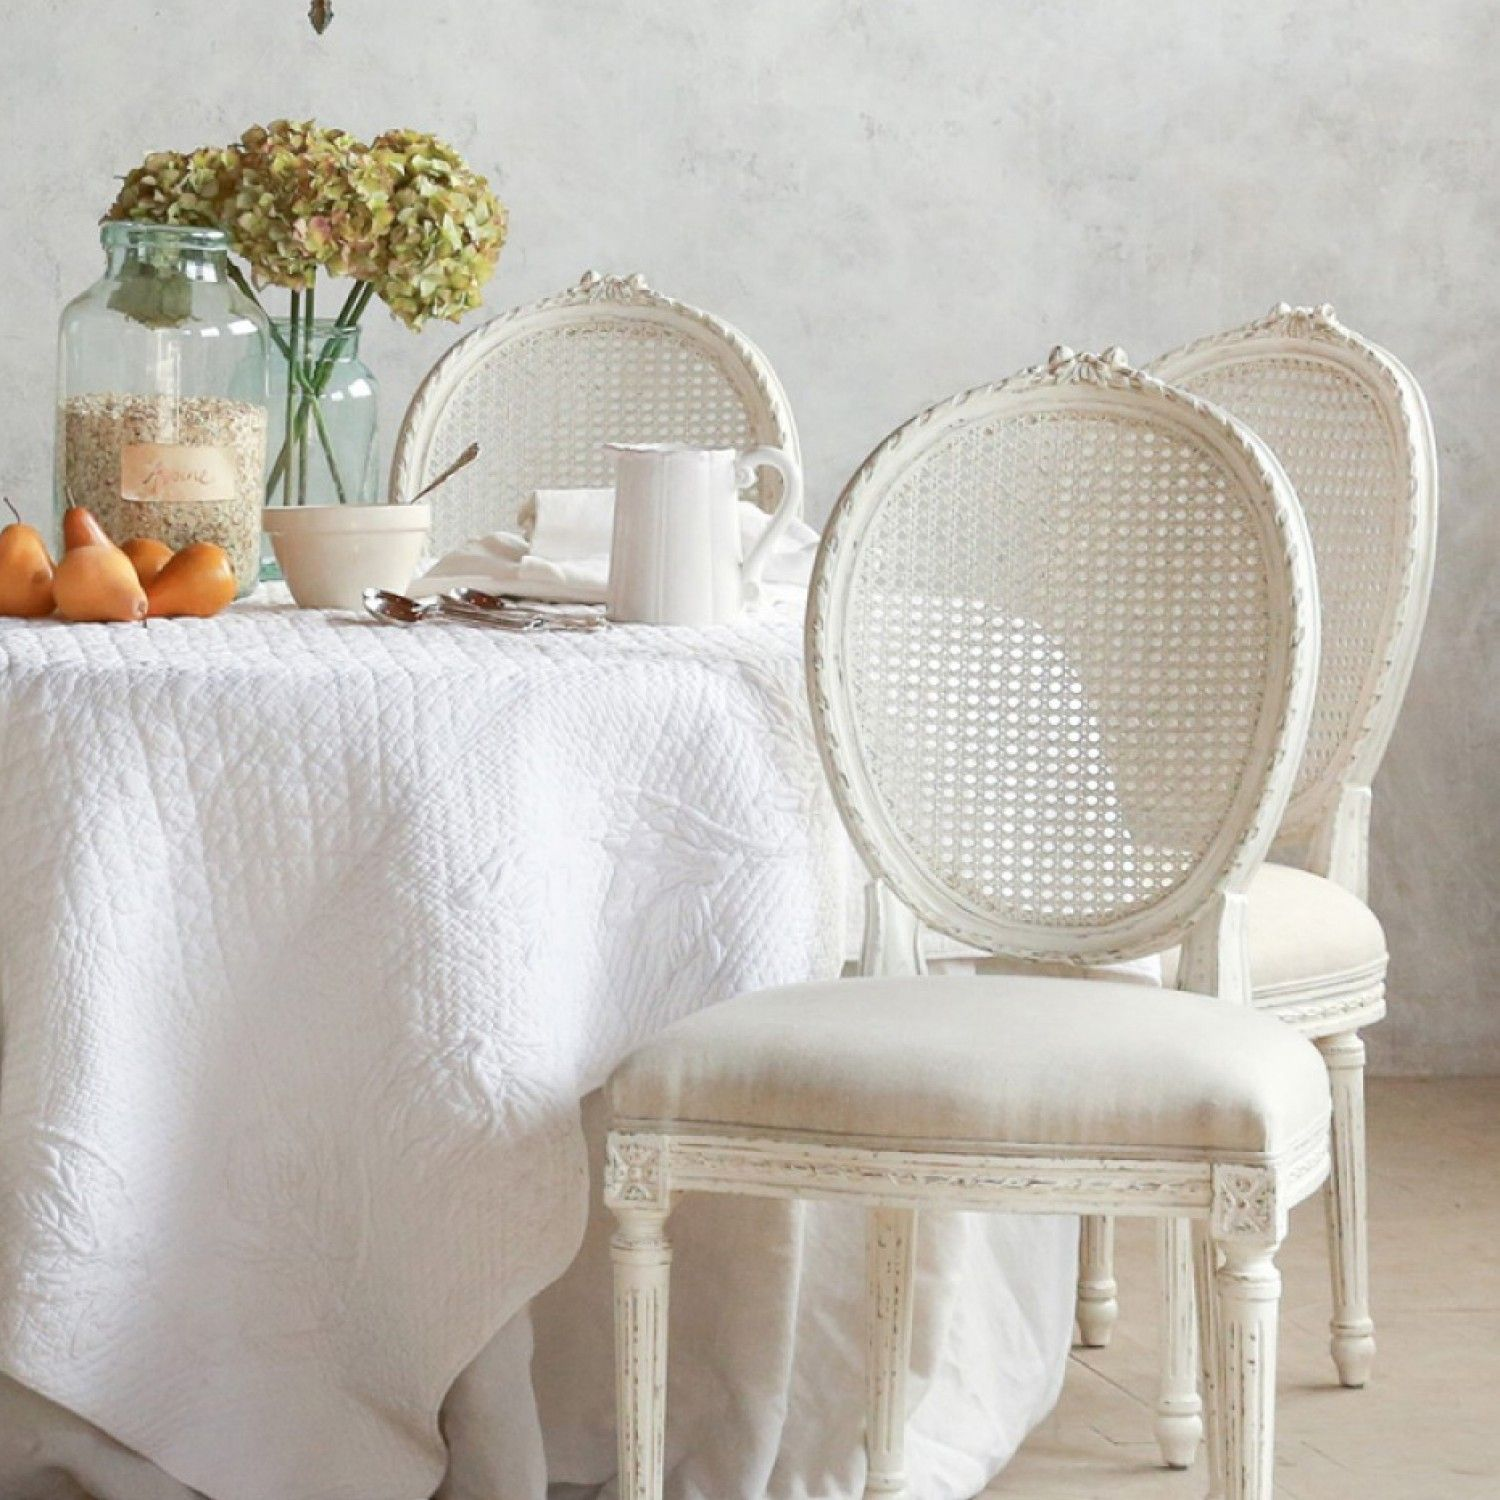 Super A Lovely French Inspired Shabby Chic Dining Space With A Caraccident5 Cool Chair Designs And Ideas Caraccident5Info